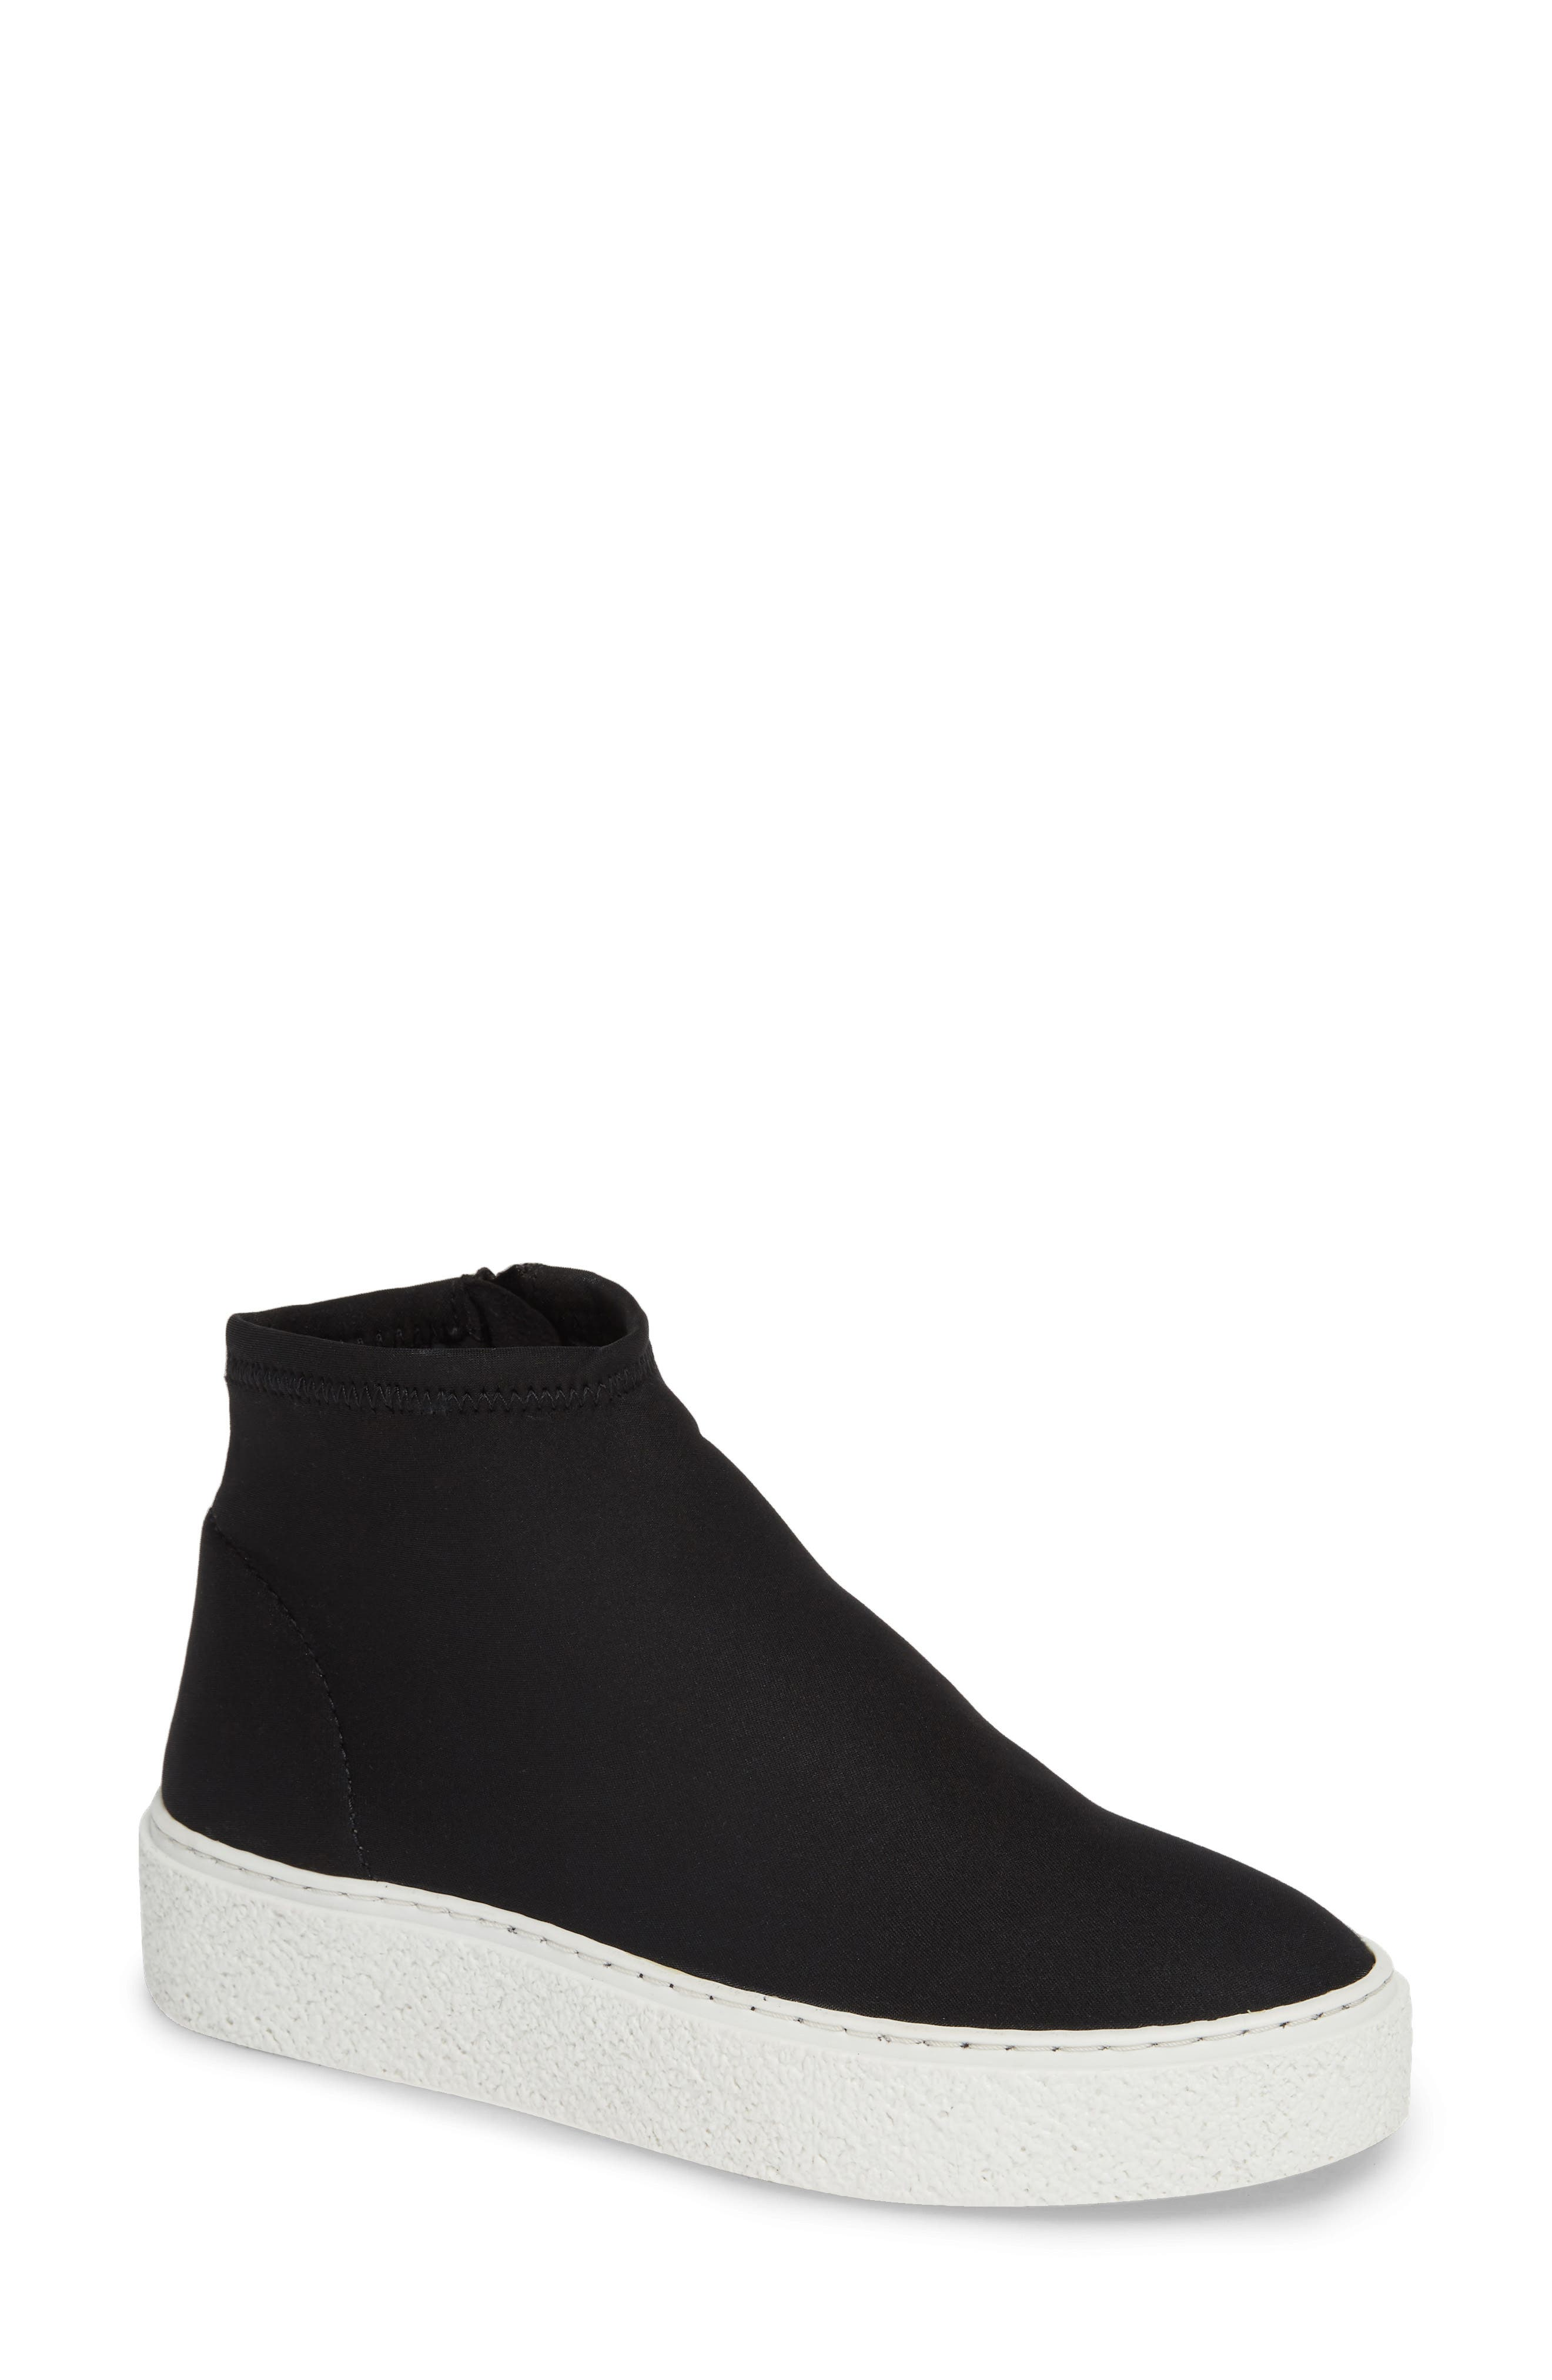 Inventive High Top Sneaker,                         Main,                         color, BLACK NEOPRENE FABRIC